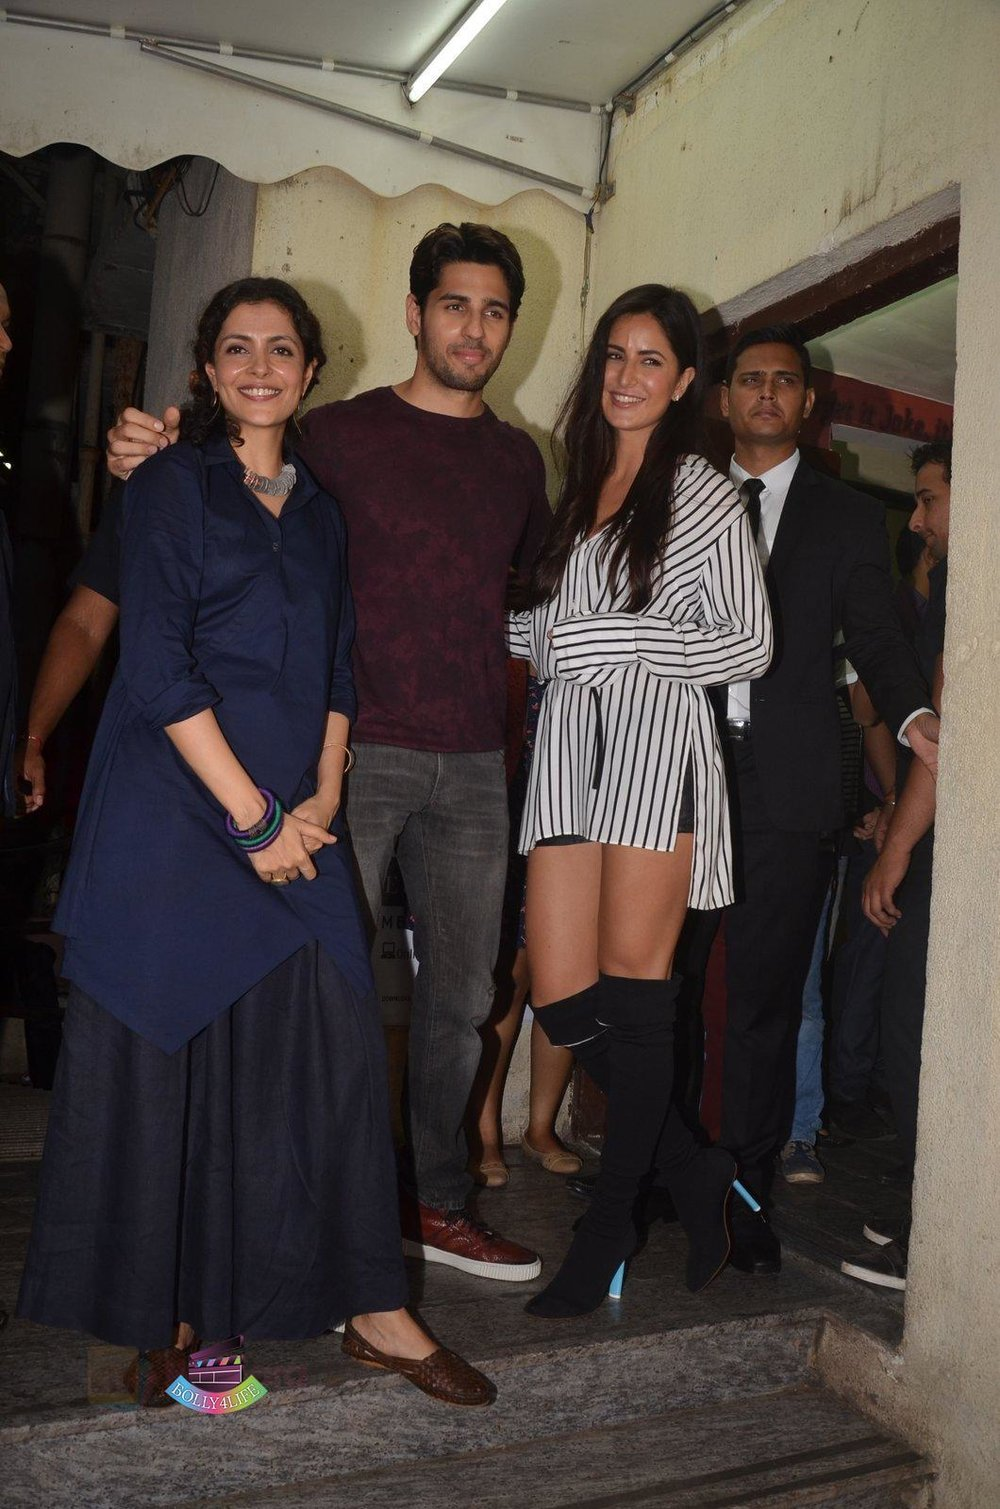 Sidharth-Malhotra-Katrina-Kaif-at-Baar-Baar-Dekho-Screening-on-8th-Sept-2016-113.jpg